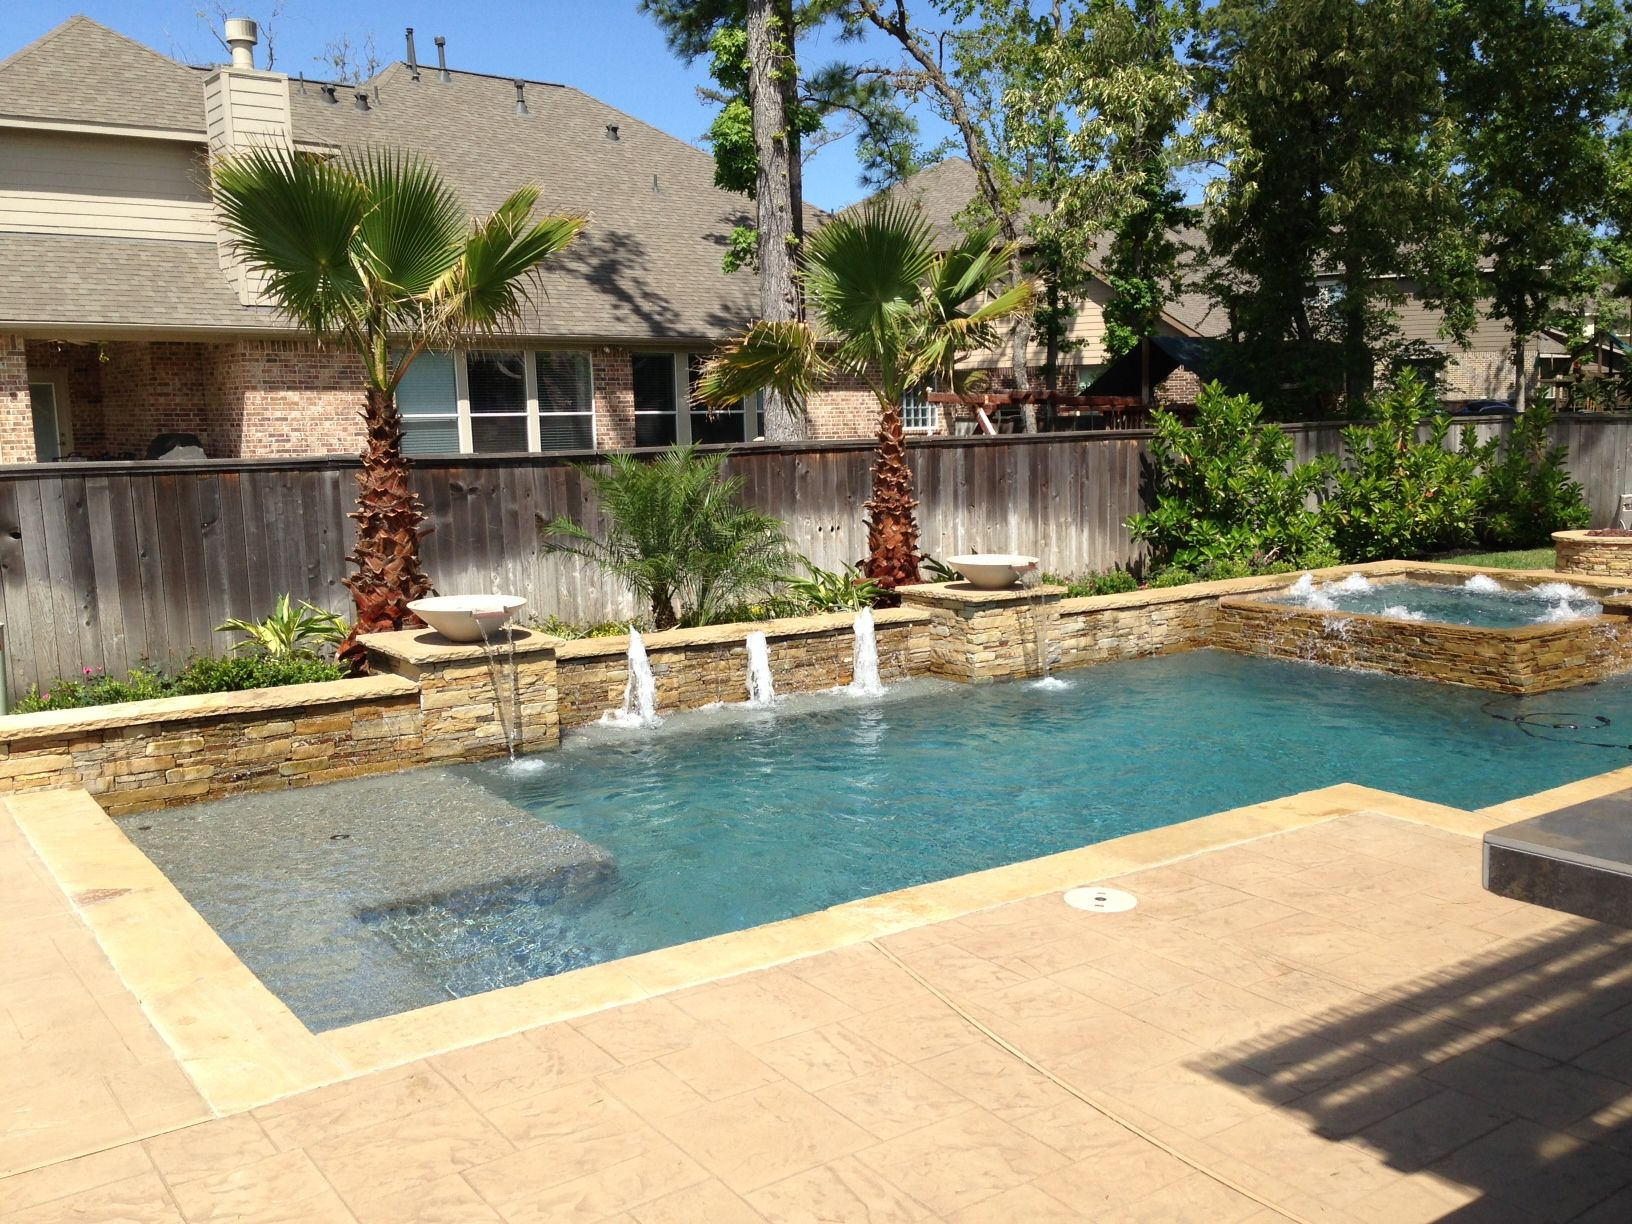 491 best Pools images on Pinterest | Pool backyard, Gardens and ...